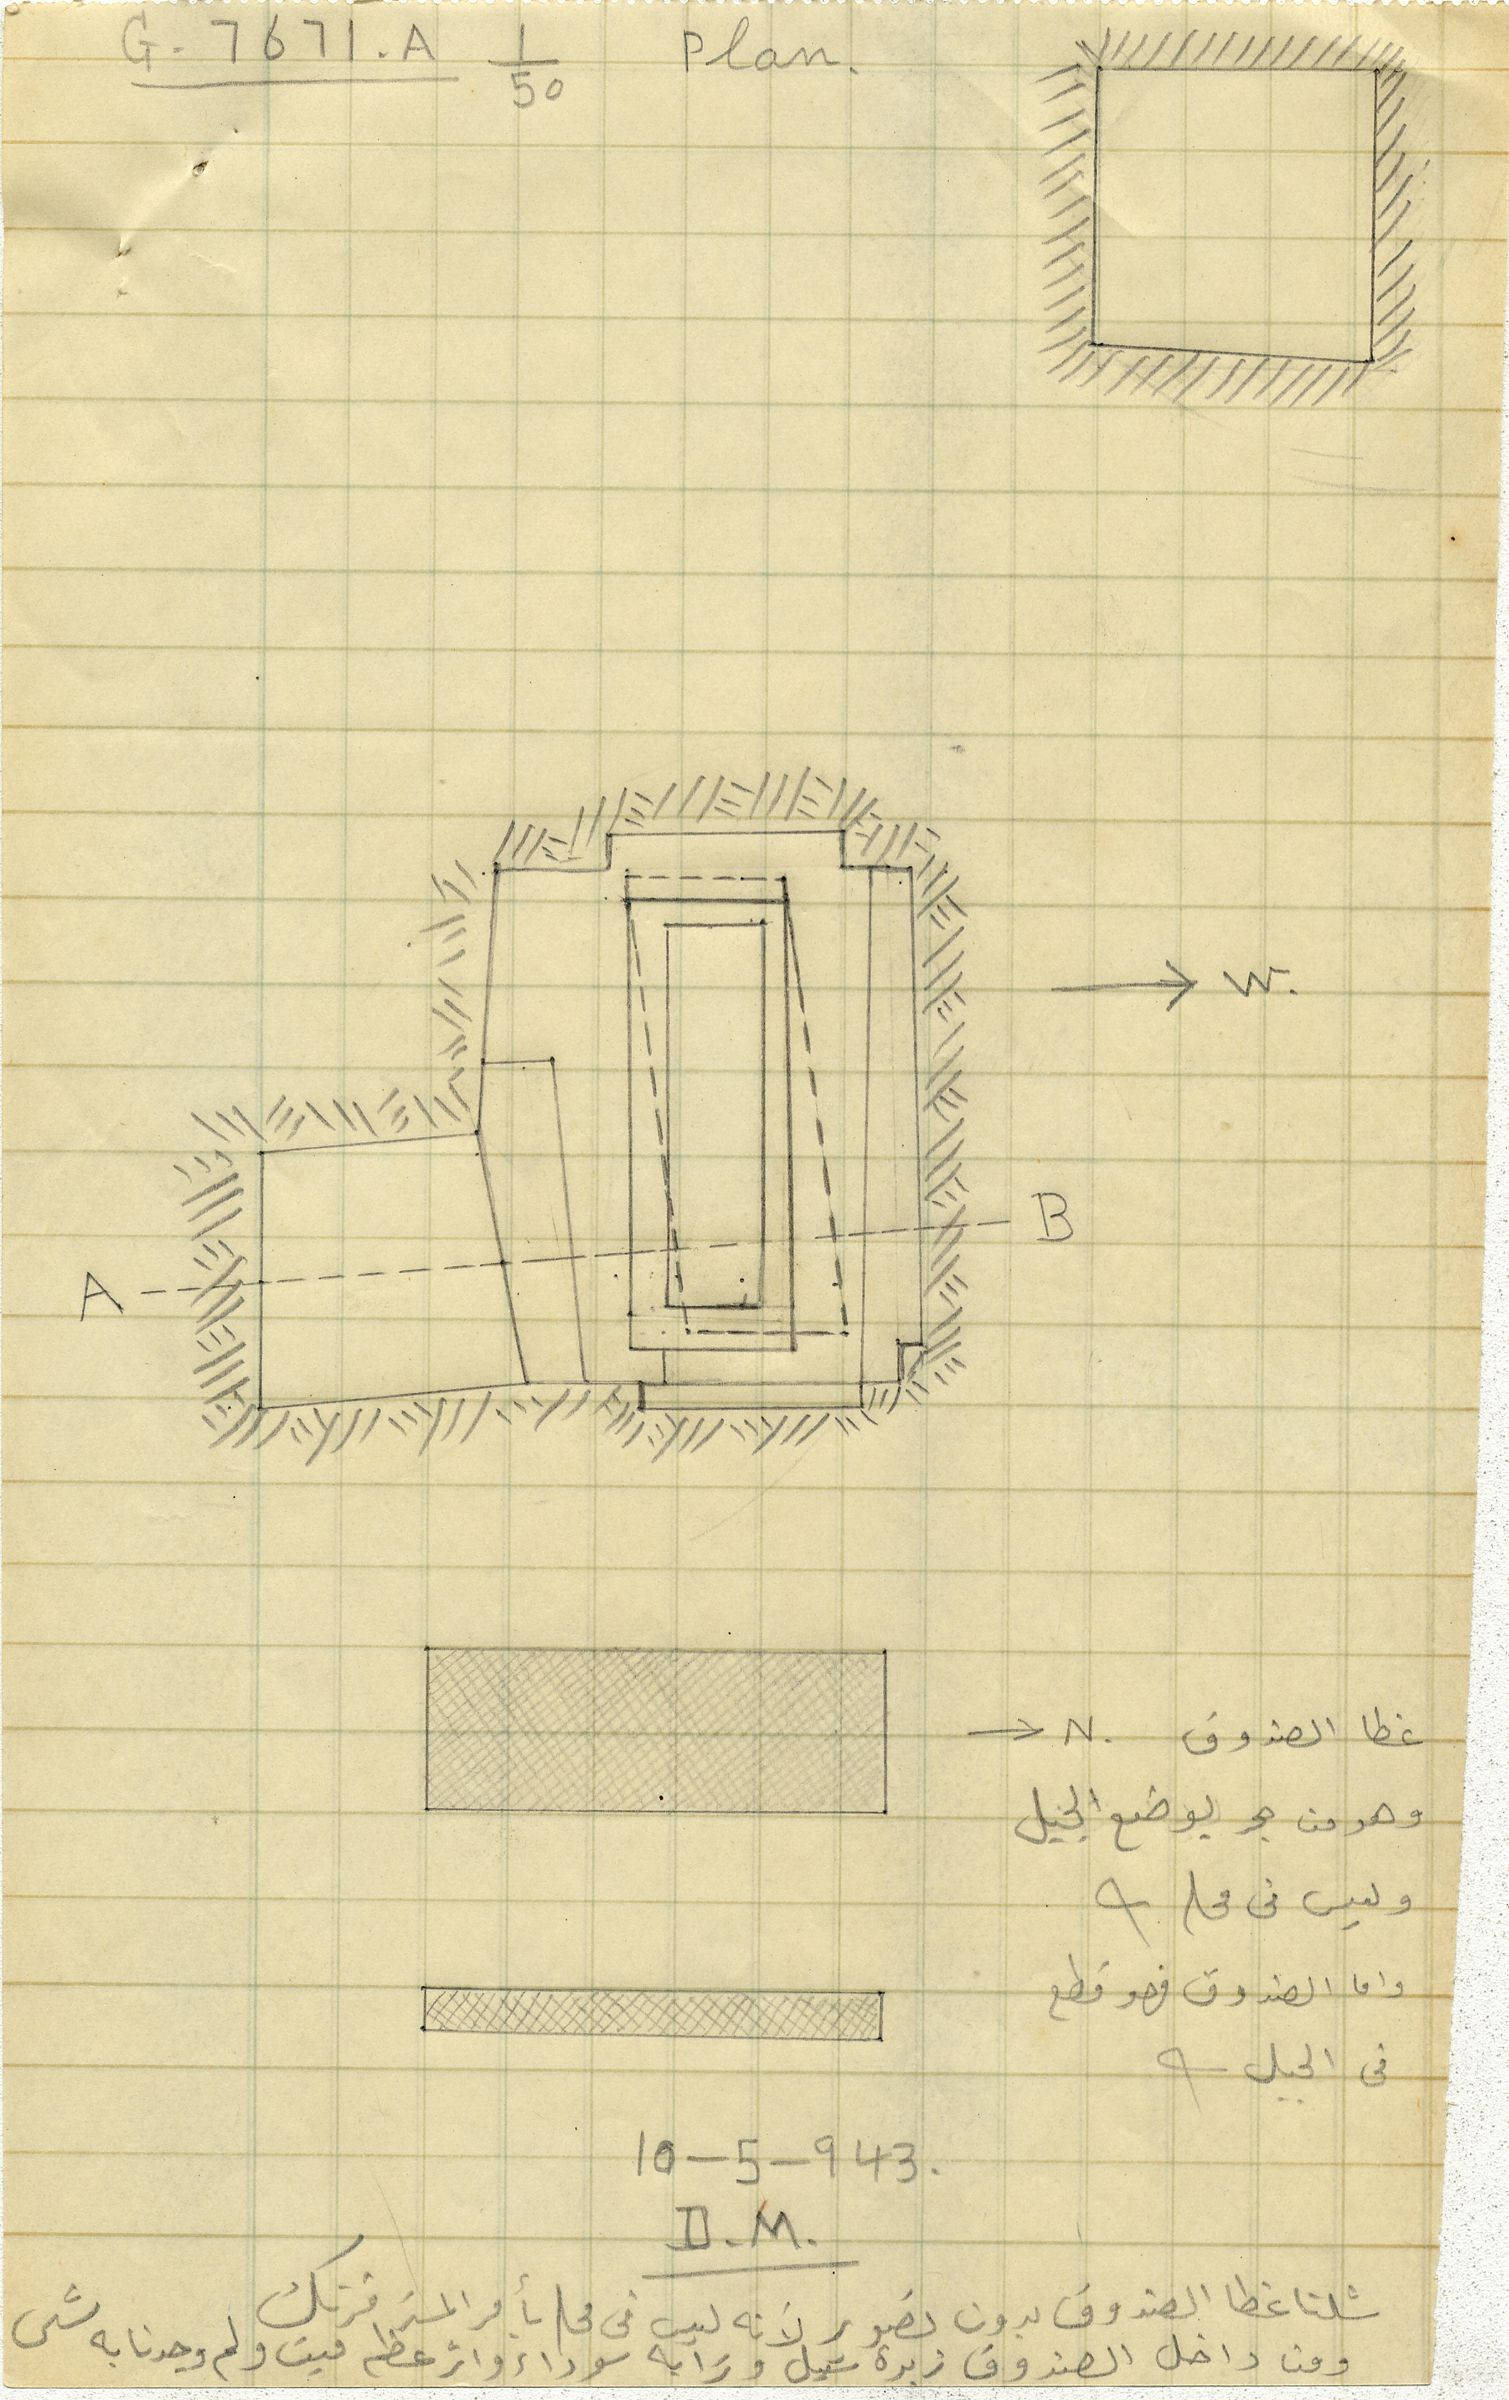 Maps and plans: G 7671, Shaft A